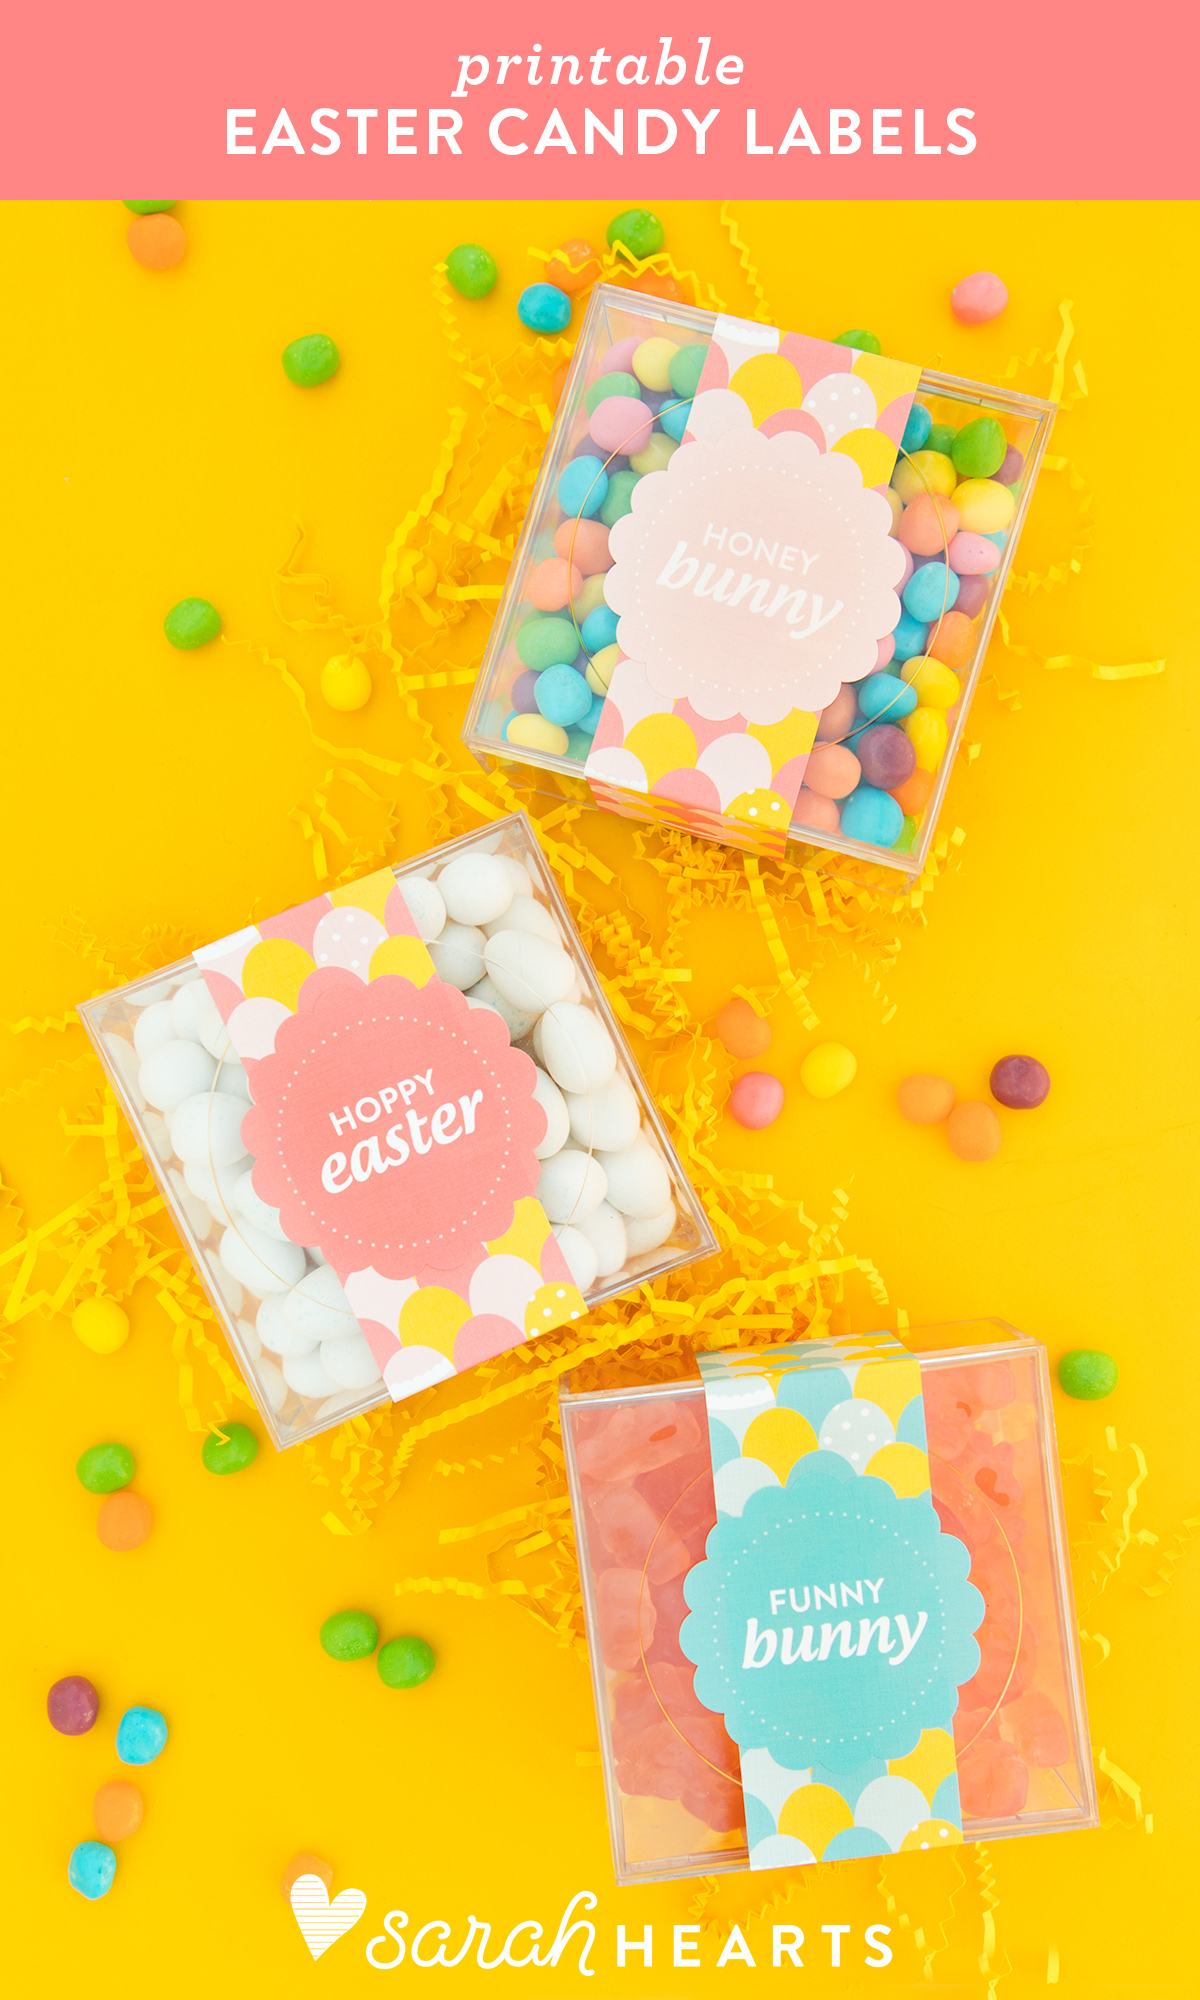 Create adorable giftable Easter candy boxes using these free printable designs with @avery labels